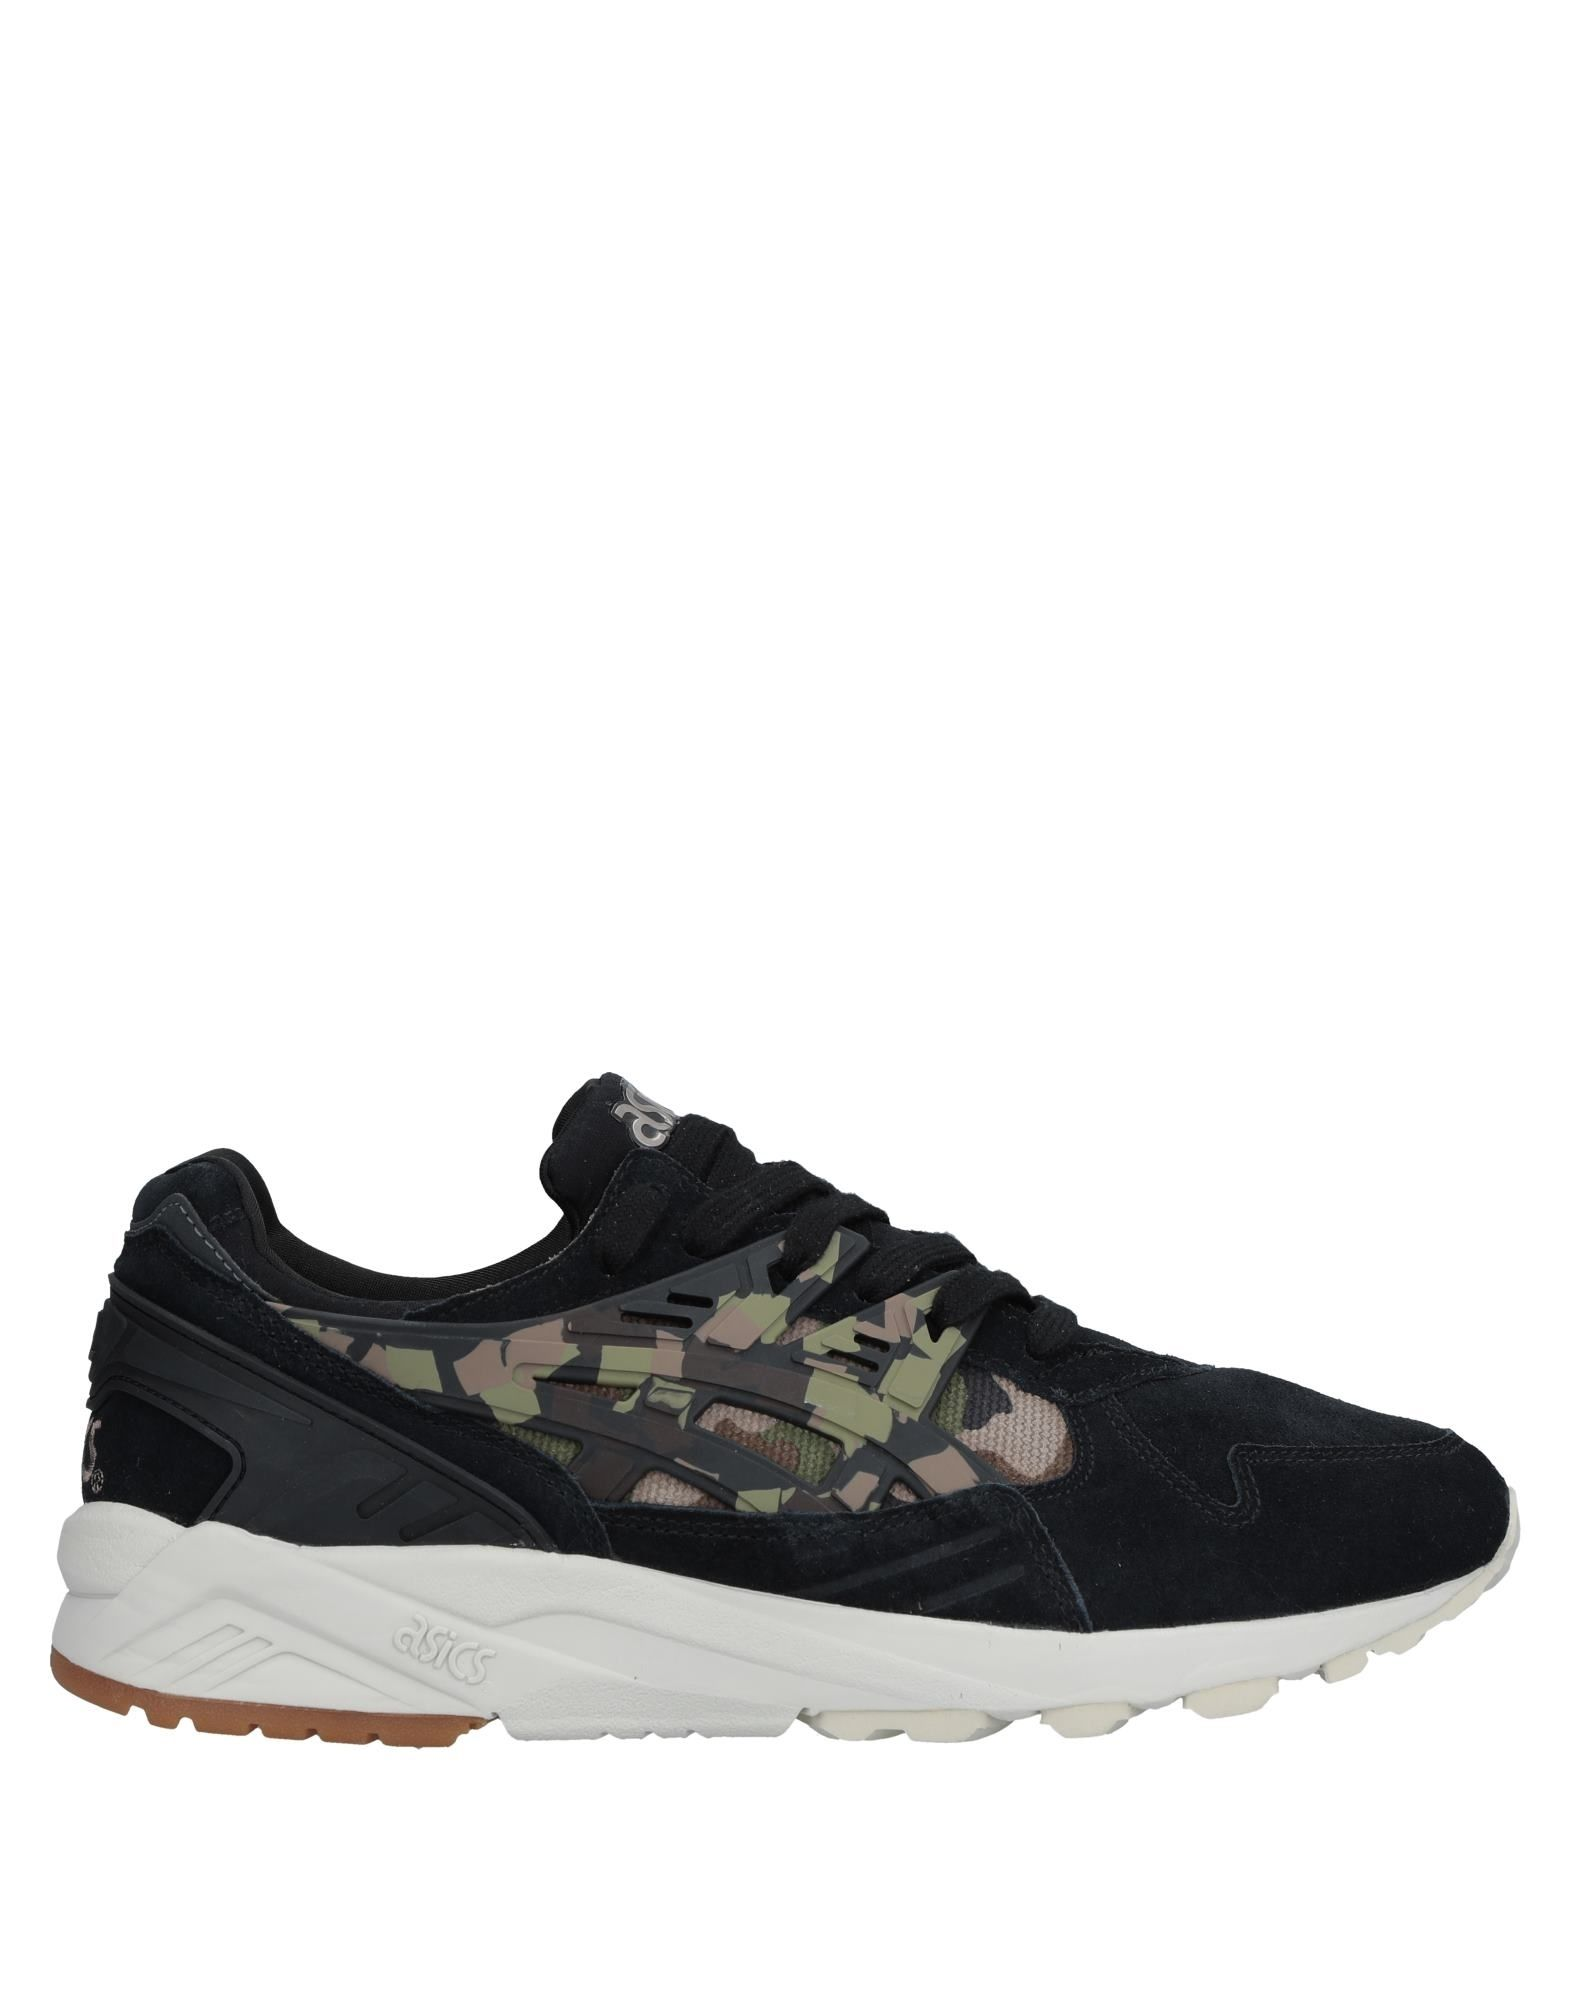 Baskets Asics Tiger Homme - Baskets Asics Tiger  Noir Chaussures casual sauvages